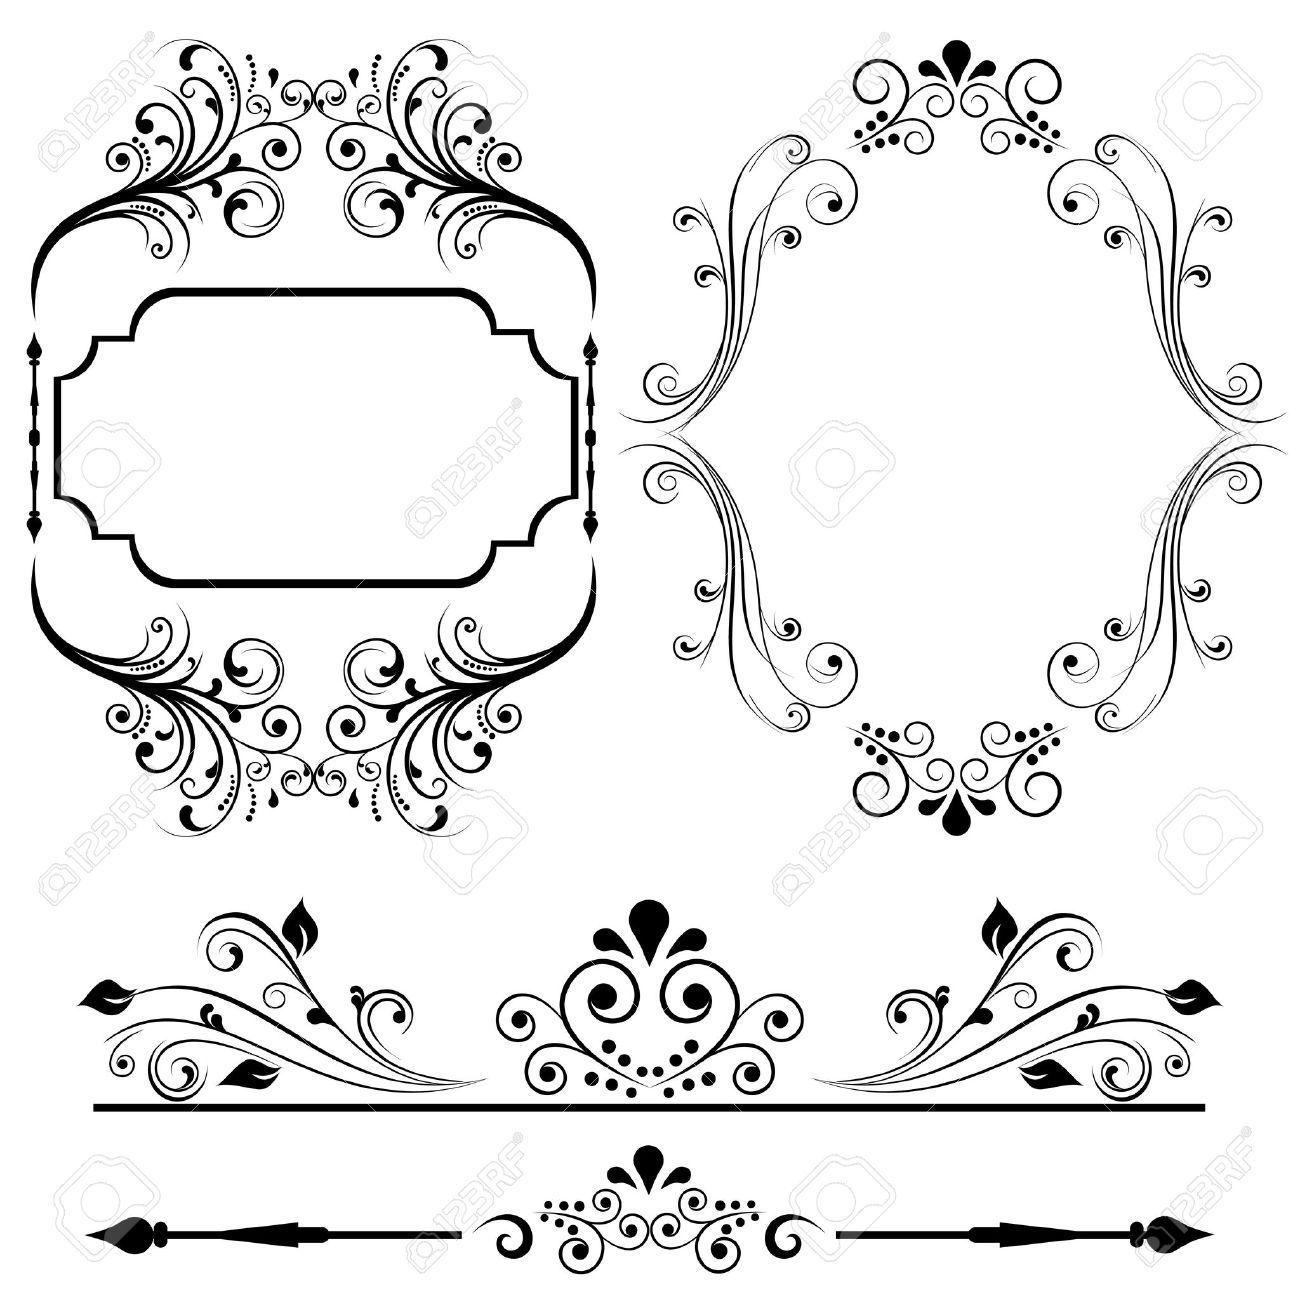 Border And Frame Designs For Cards Or Invitations Royalty Free ...